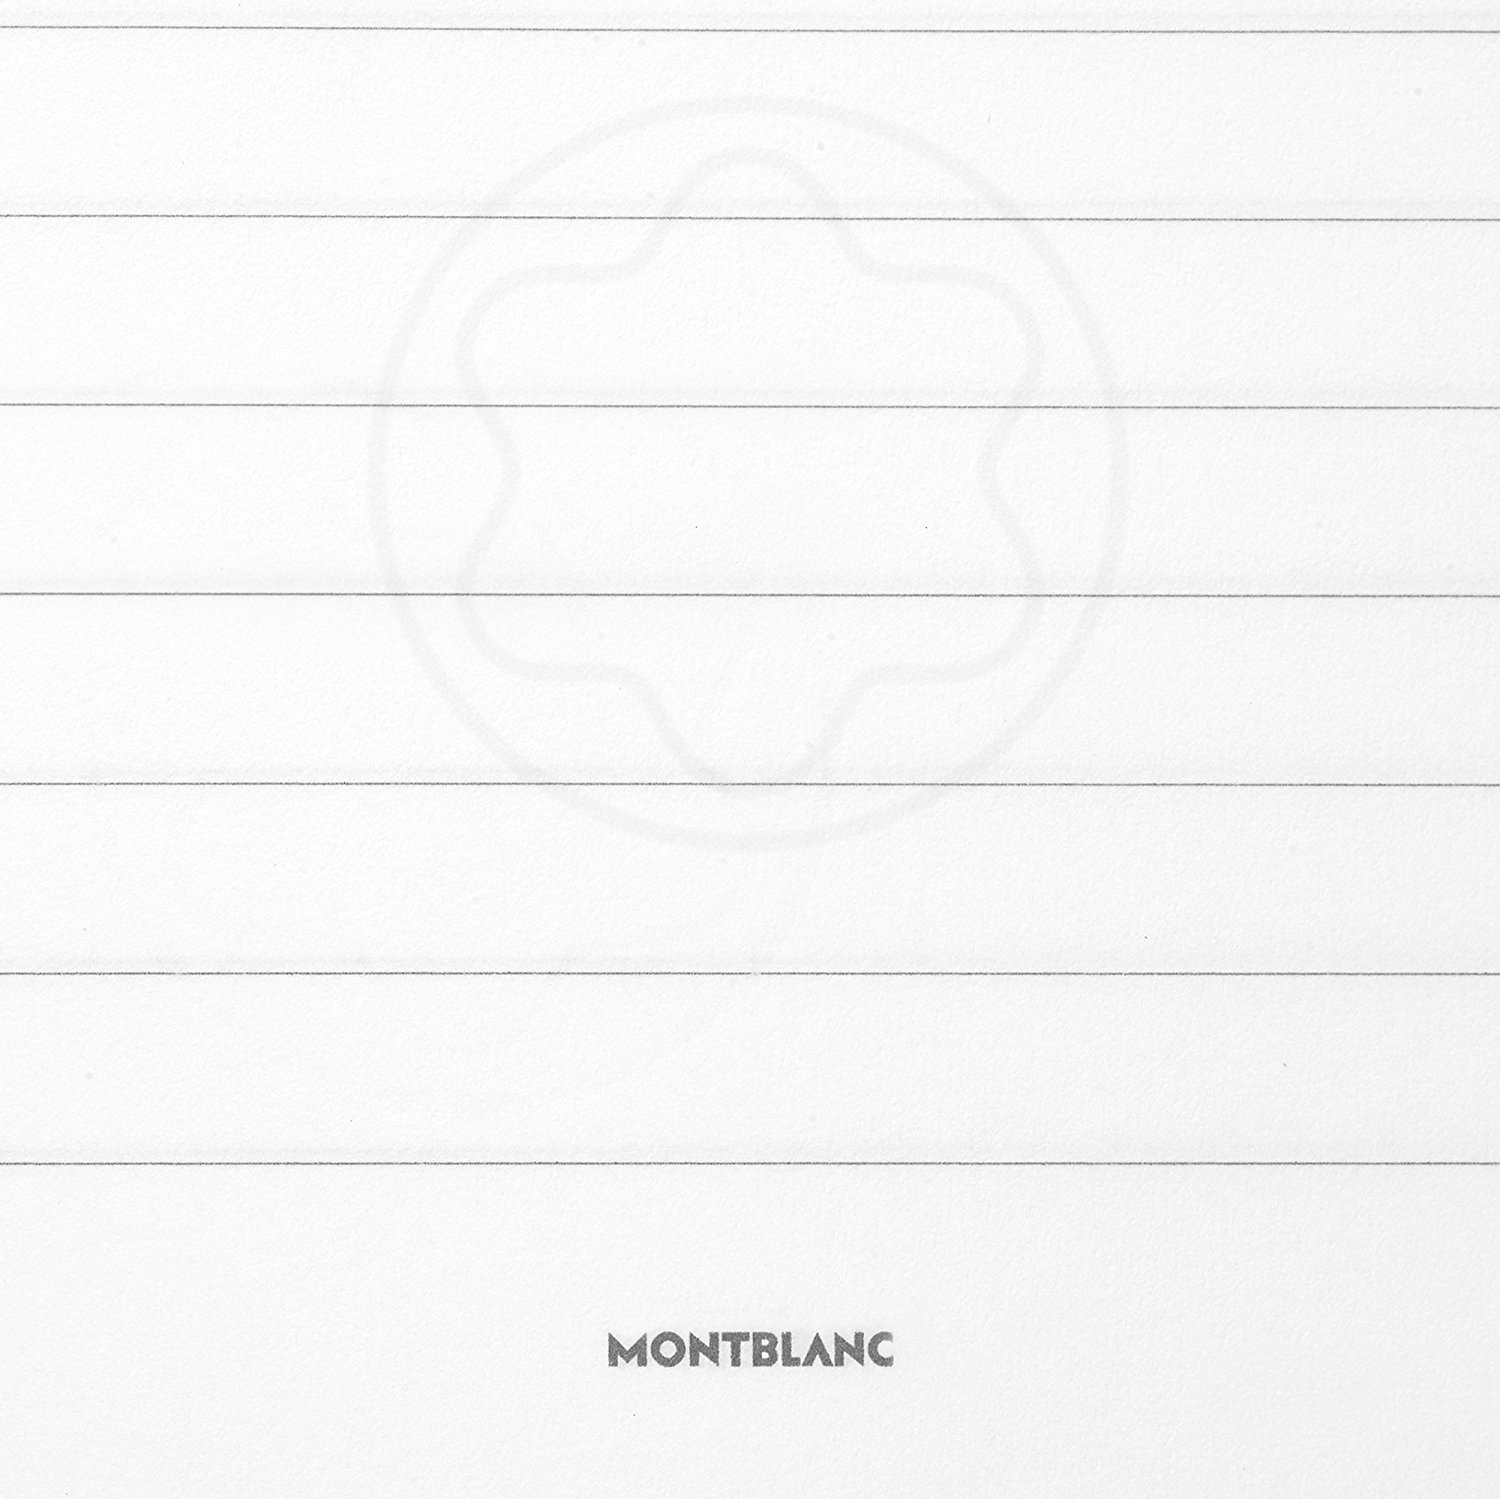 Montblanc Fine Stationary Unisex 146 Green Lined Leather Notebook Accessories 116518 by MONTBLANC